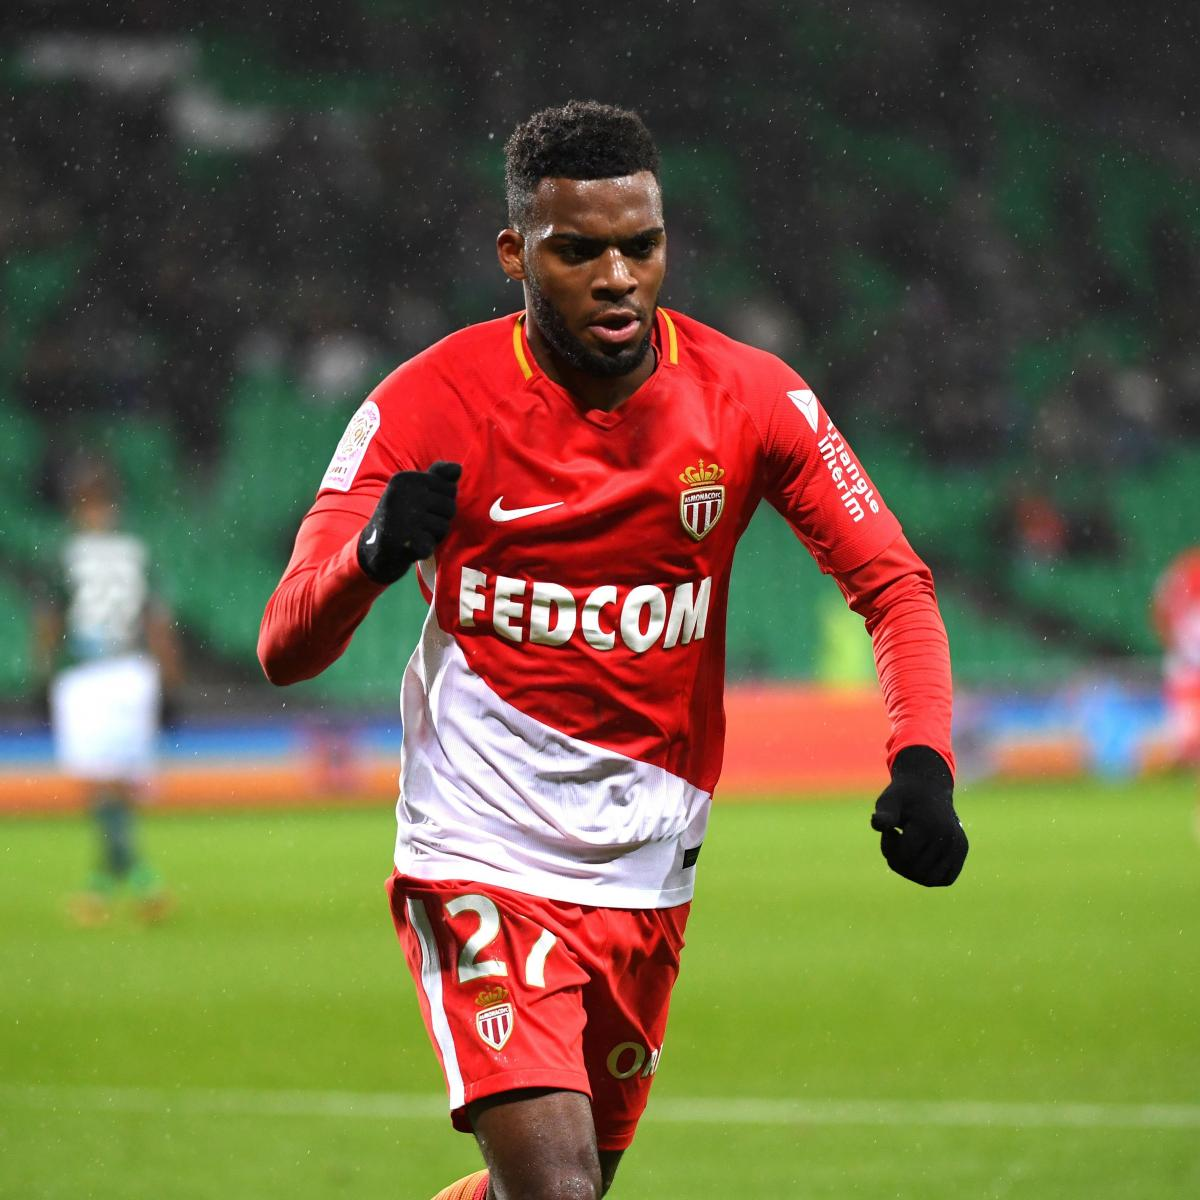 Liverpool Fc Transfer Gossip Reds Close In On Barcelona: Liverpool Transfer News: Latest Rumours On Thomas Lemar